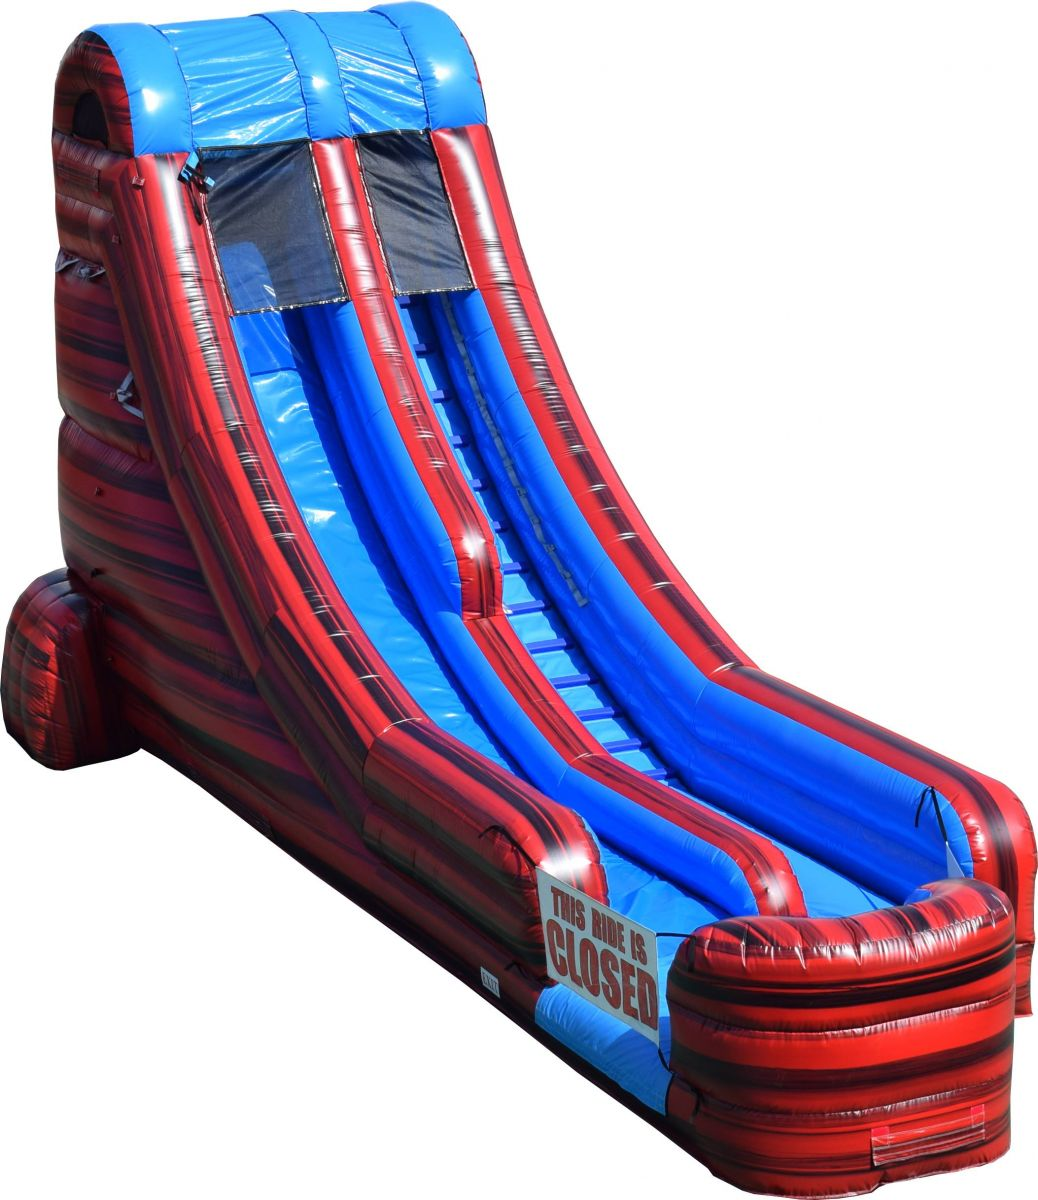 Superman Water Slide